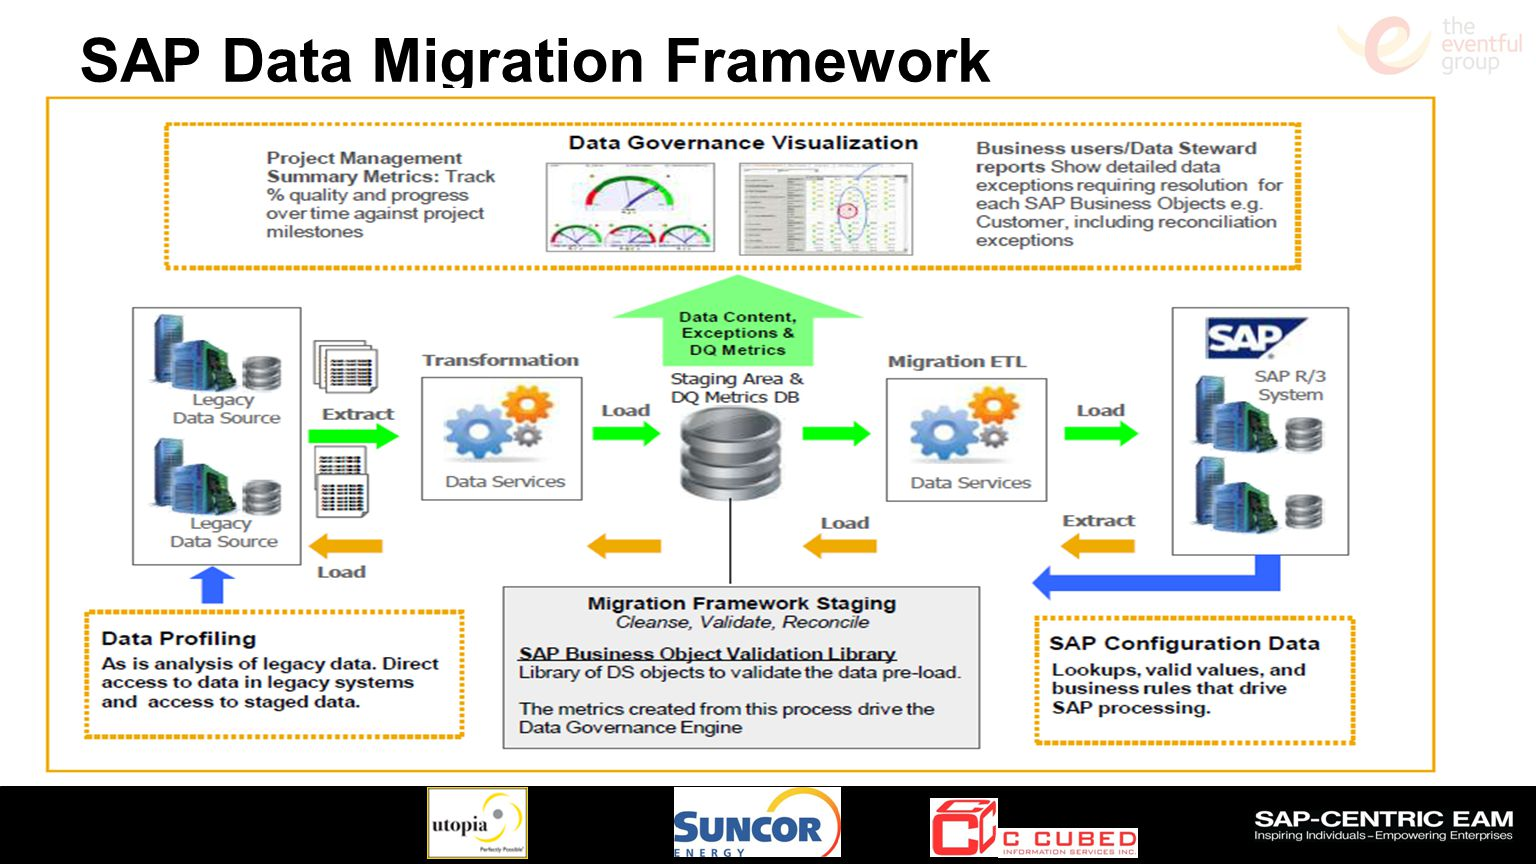 SAP Data Migration Framework